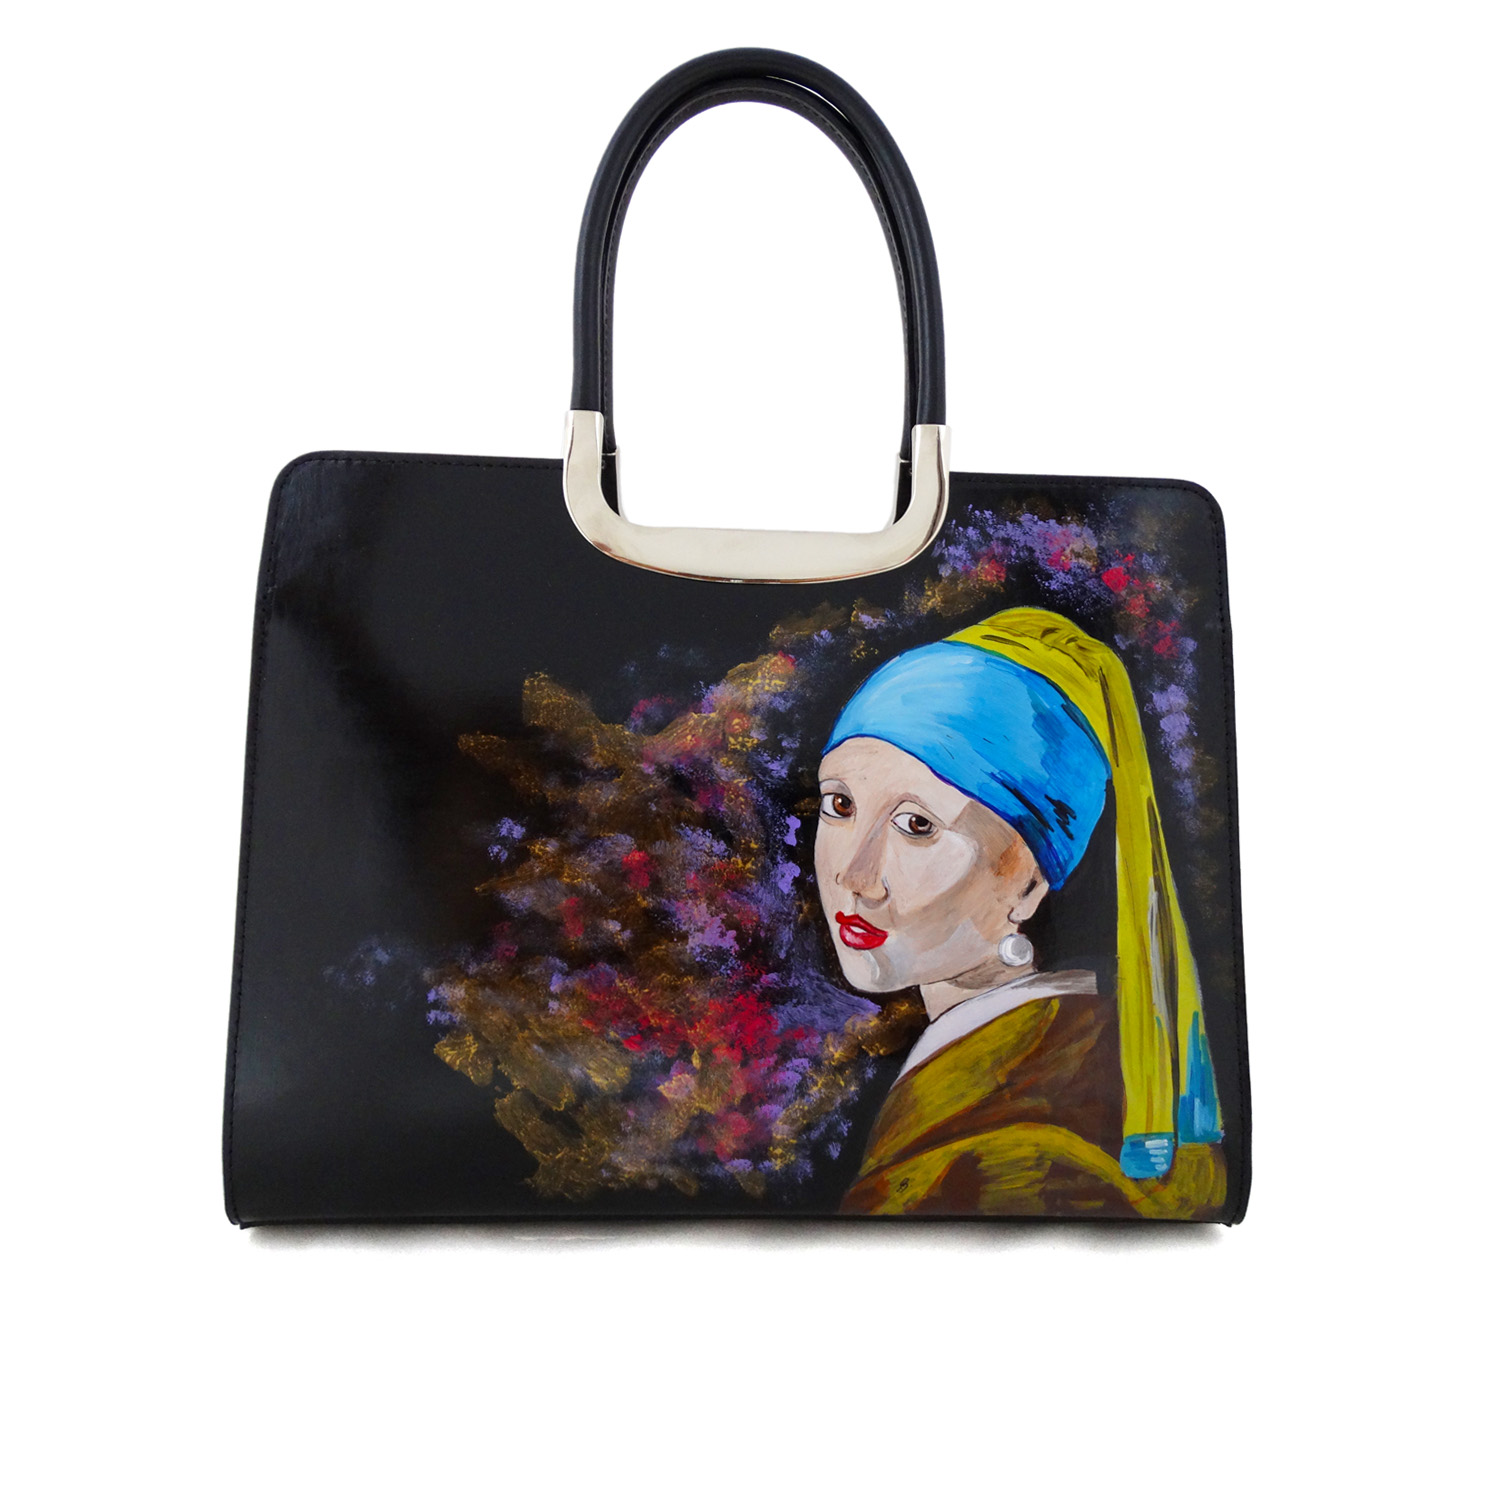 Hand painted bag - Girl with a Pearl Earring by Vermeer